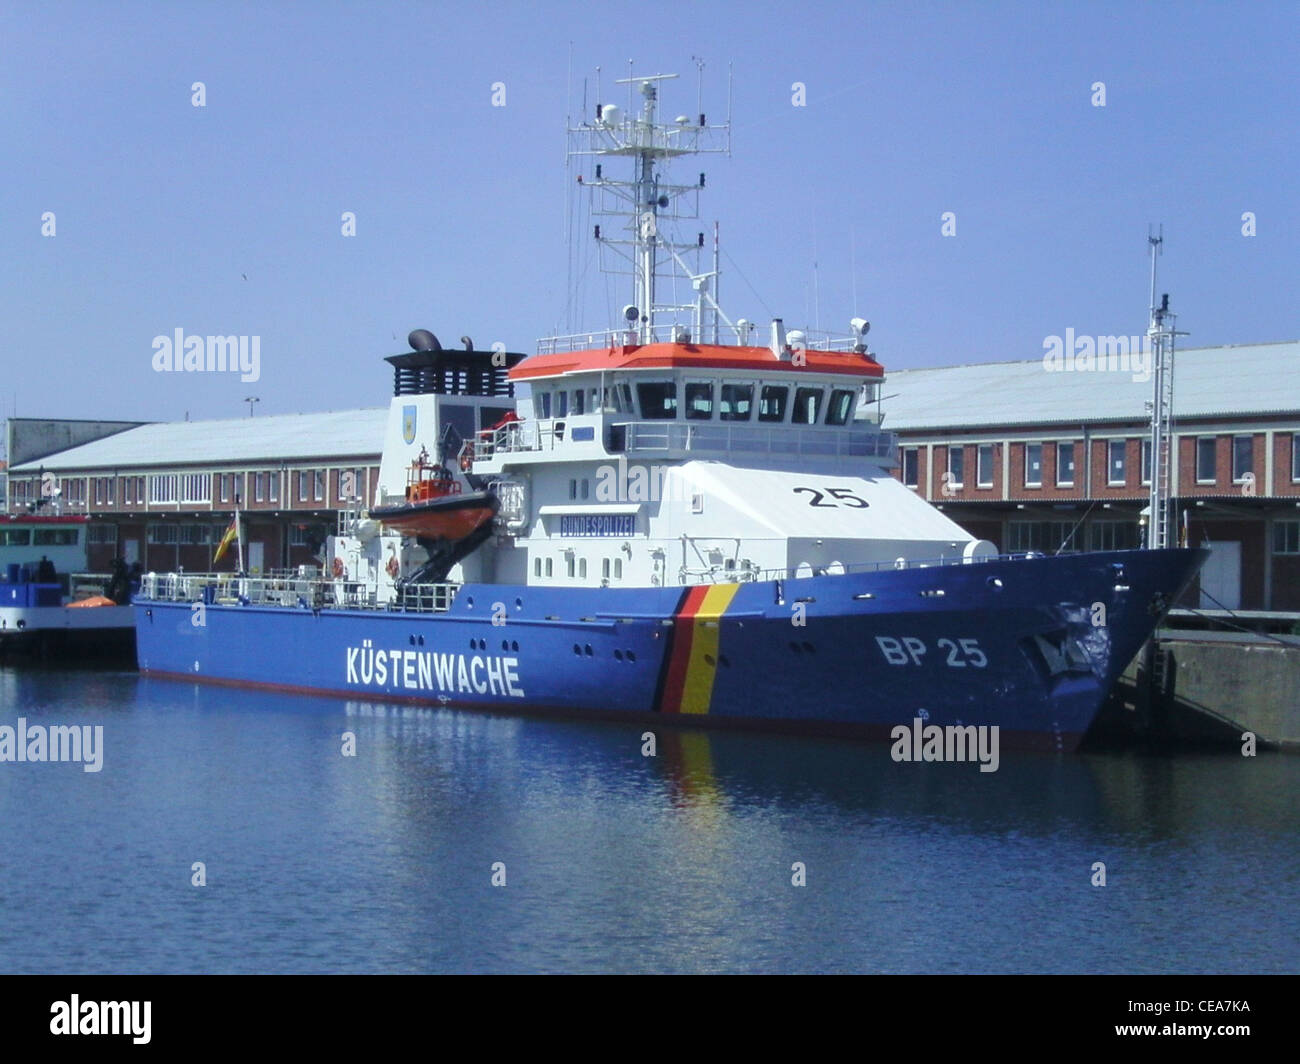 The patrol boat BP 25 Bayreuth of the Federal Police of Germany in the port of Cuxhaven - Stock Image